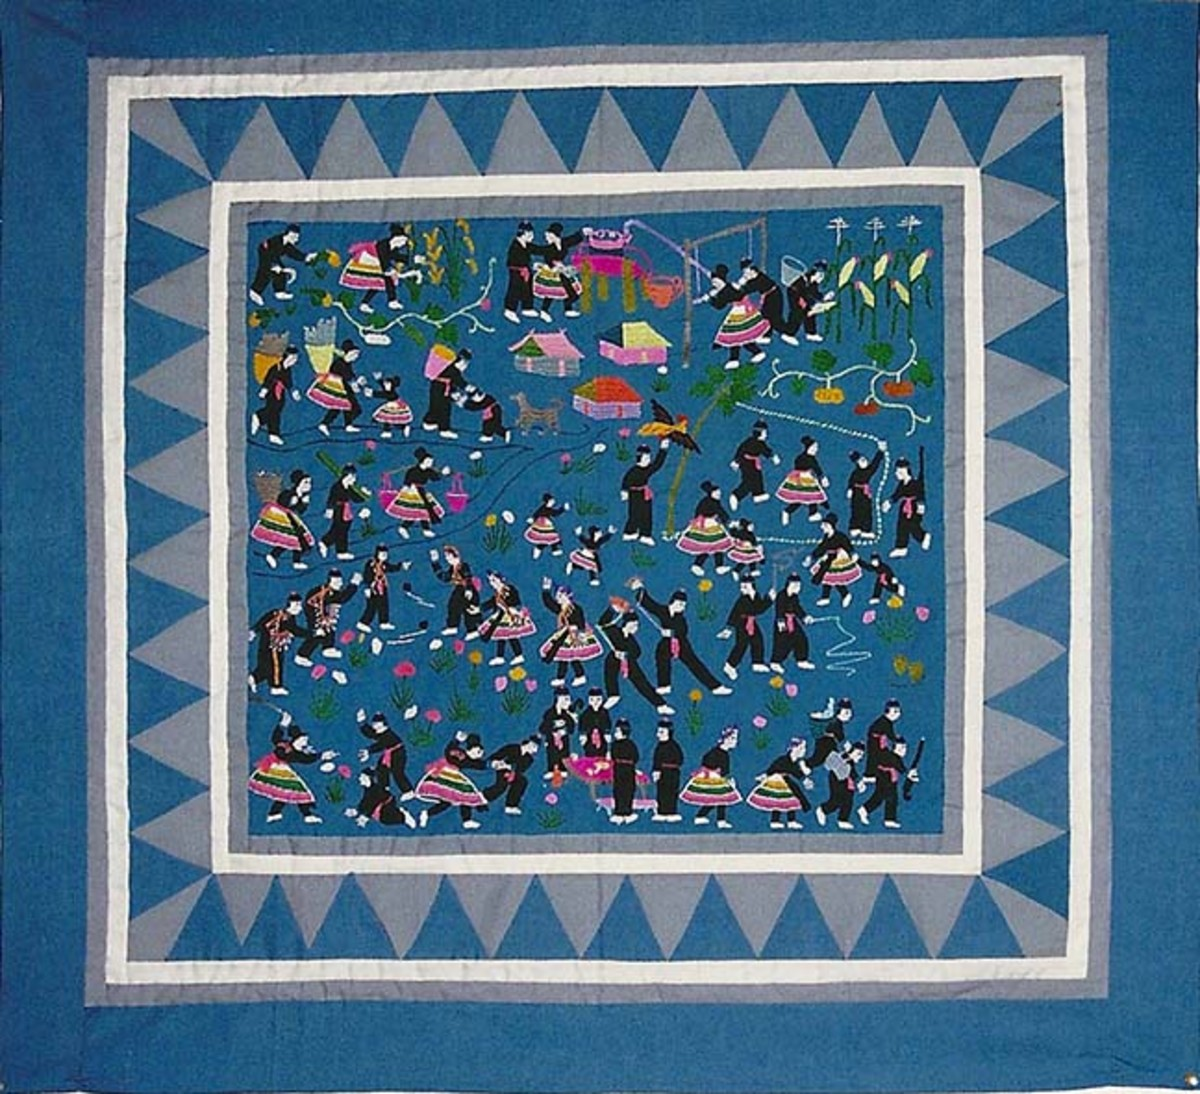 A smaller quilt I discovered at a friend's home depicting her family story.